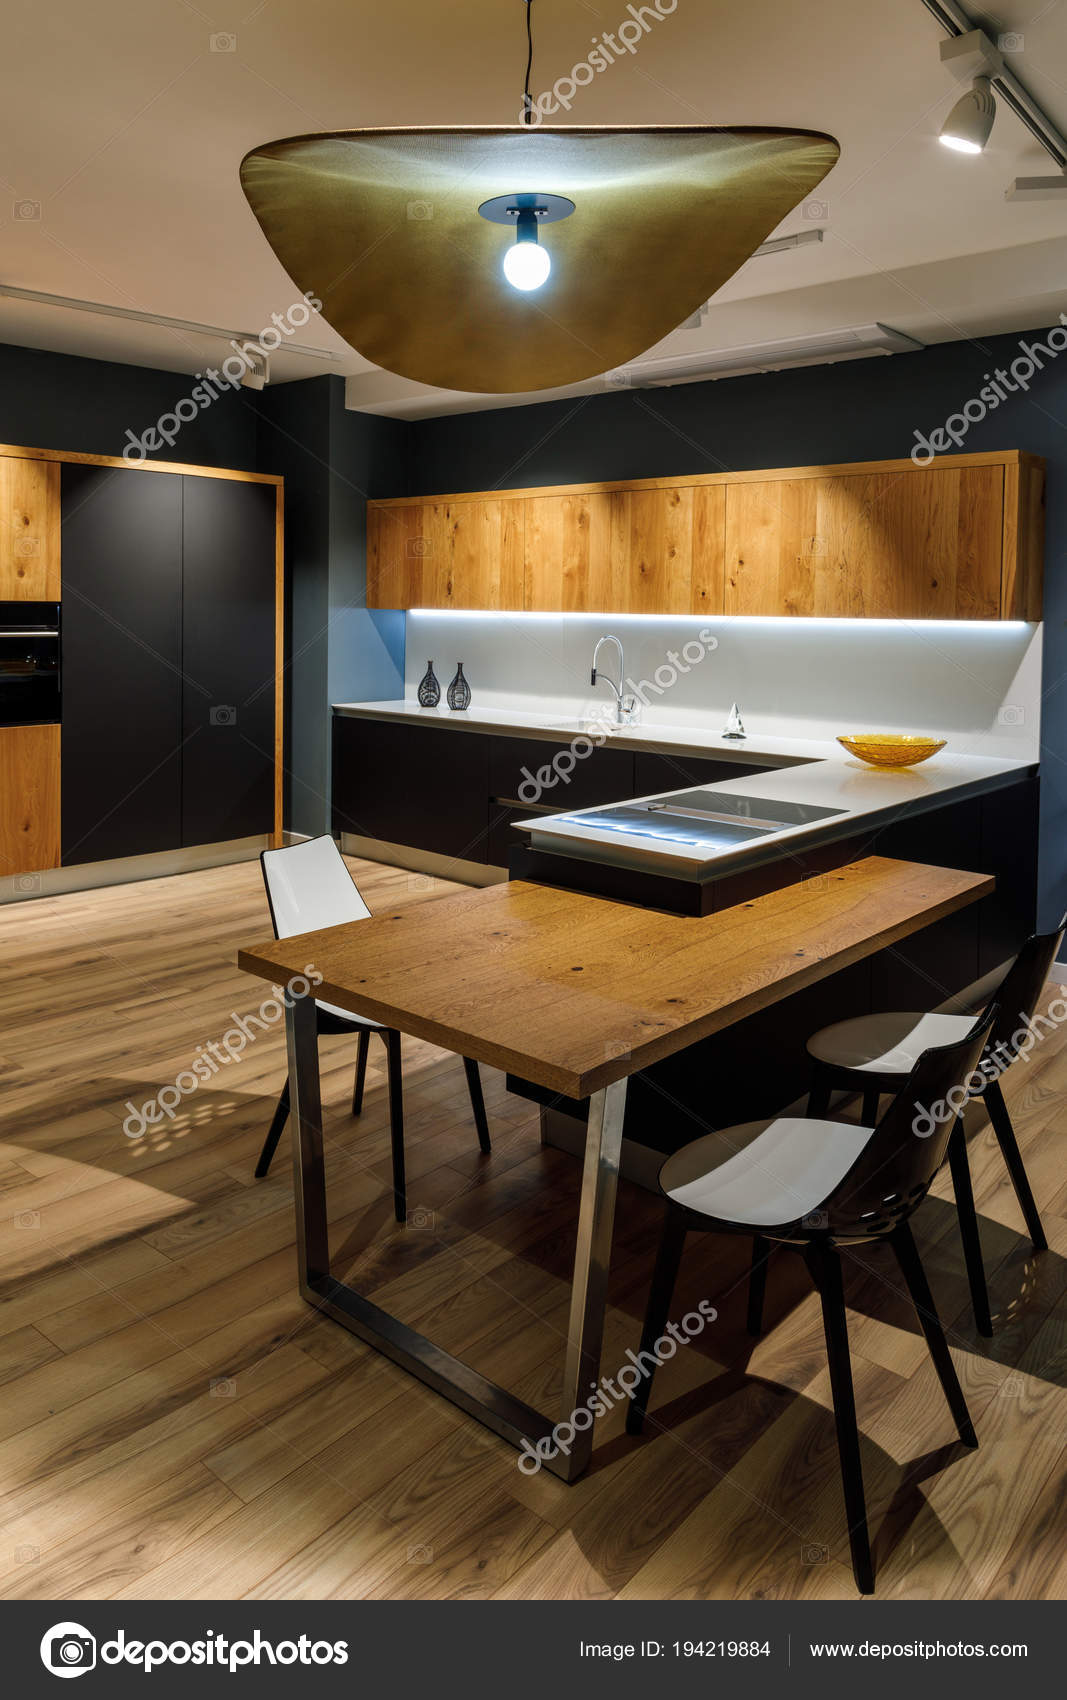 Renovated kitchen interior large lamp table renovated kitchen interior large lamp table mozeypictures Choice Image